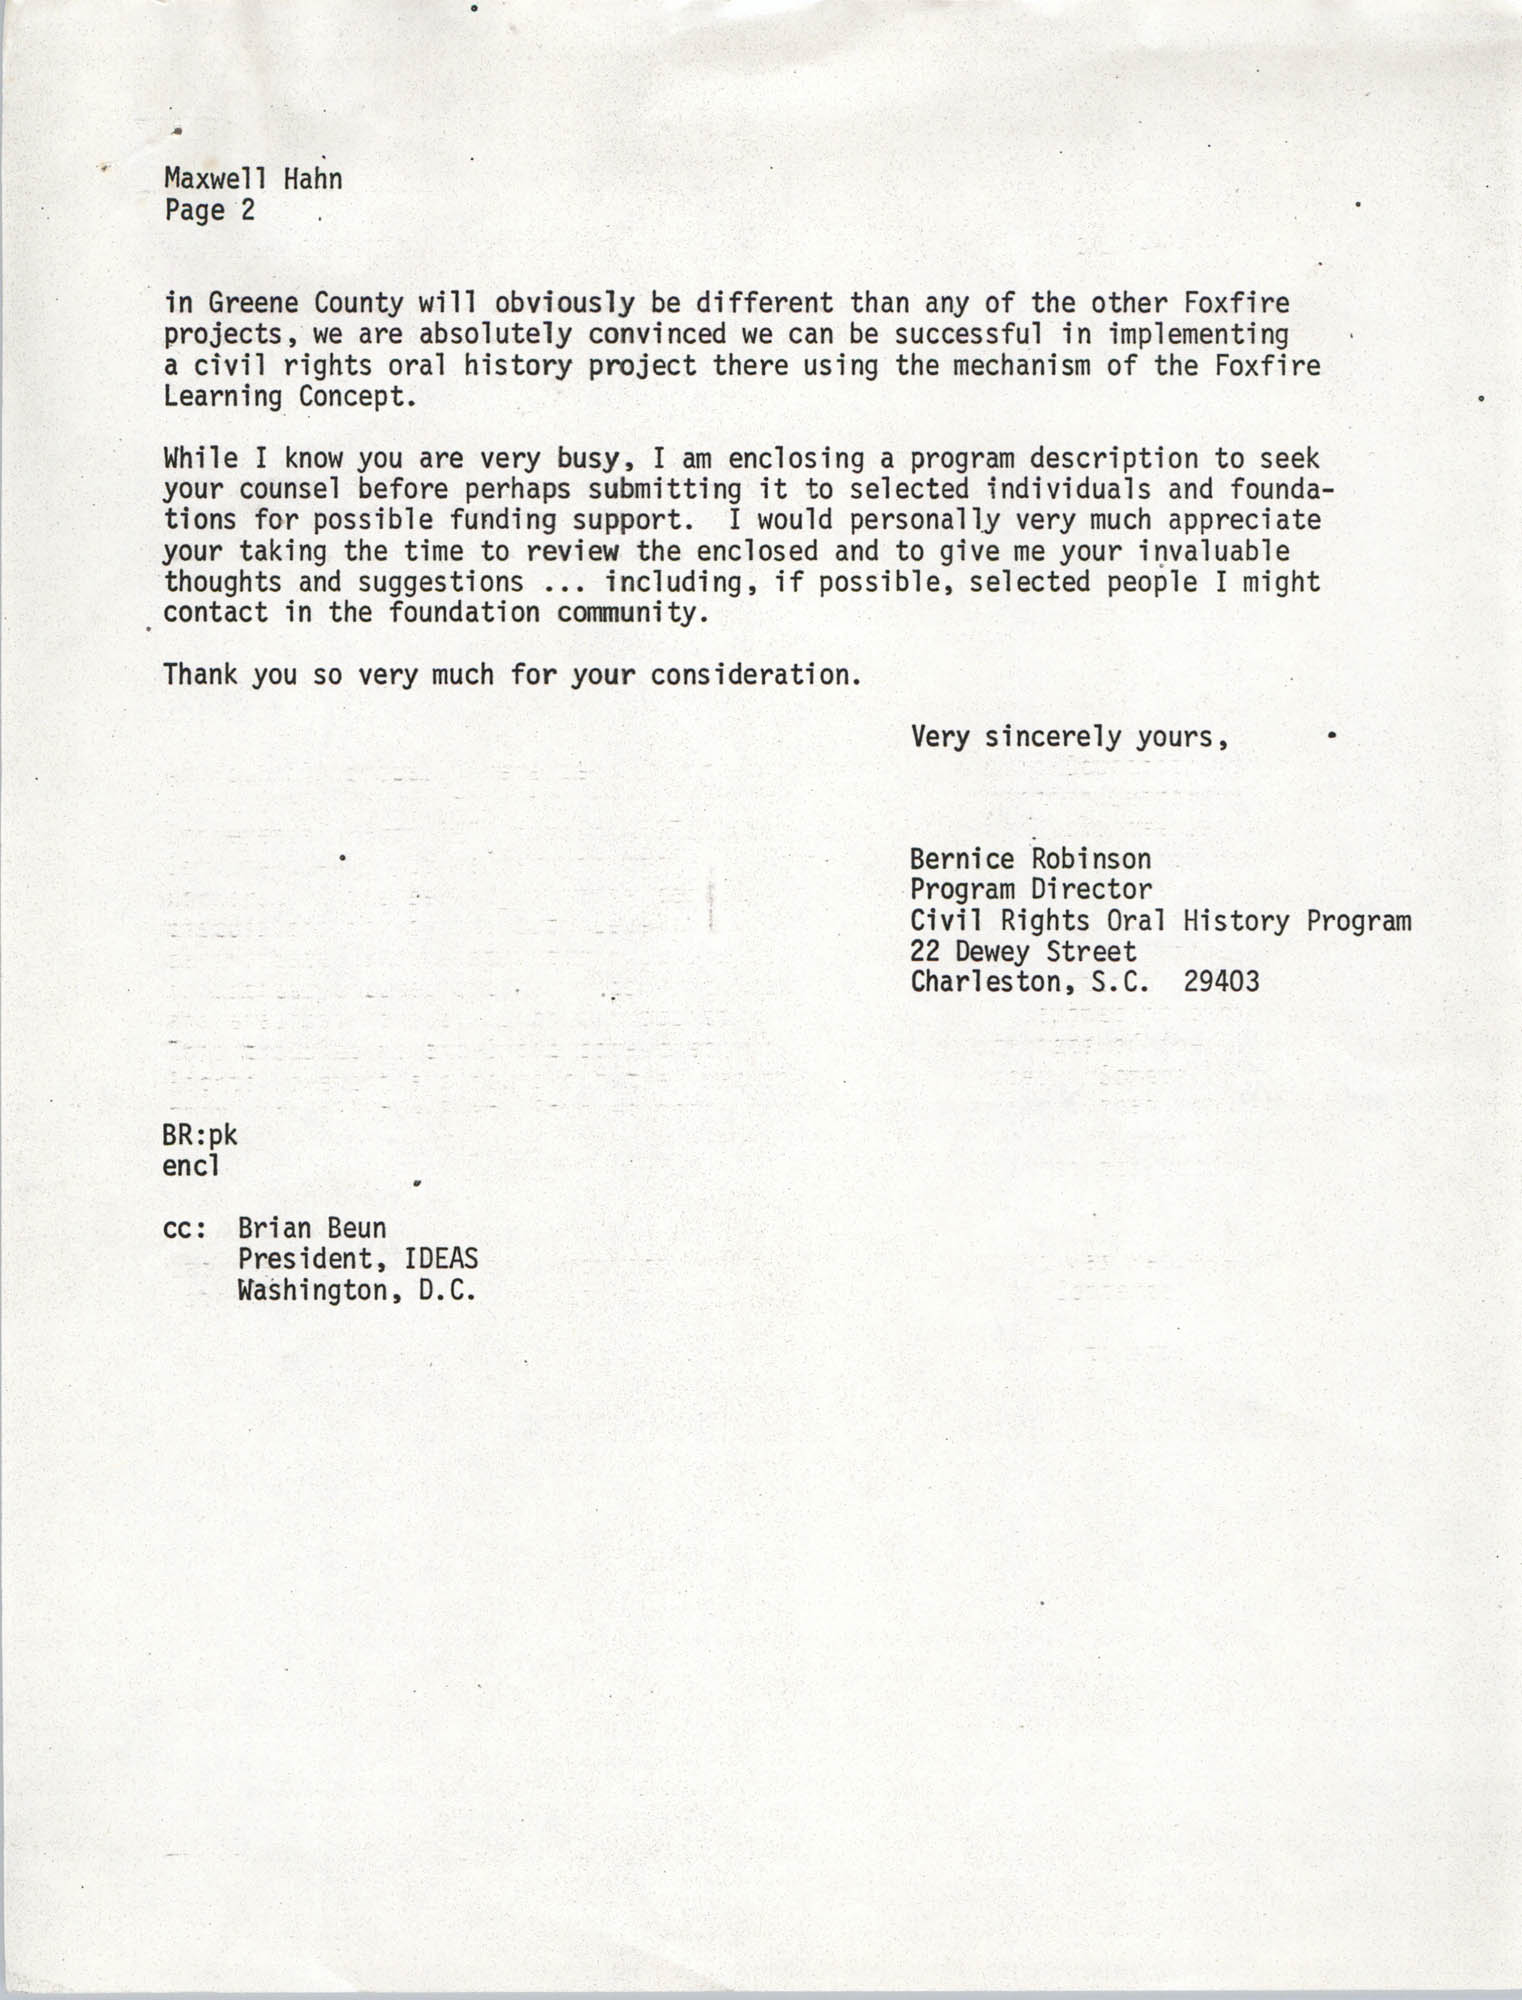 Letter from Bernice Robinson to Maxwell Hahn, May 4, 1973, Page 2